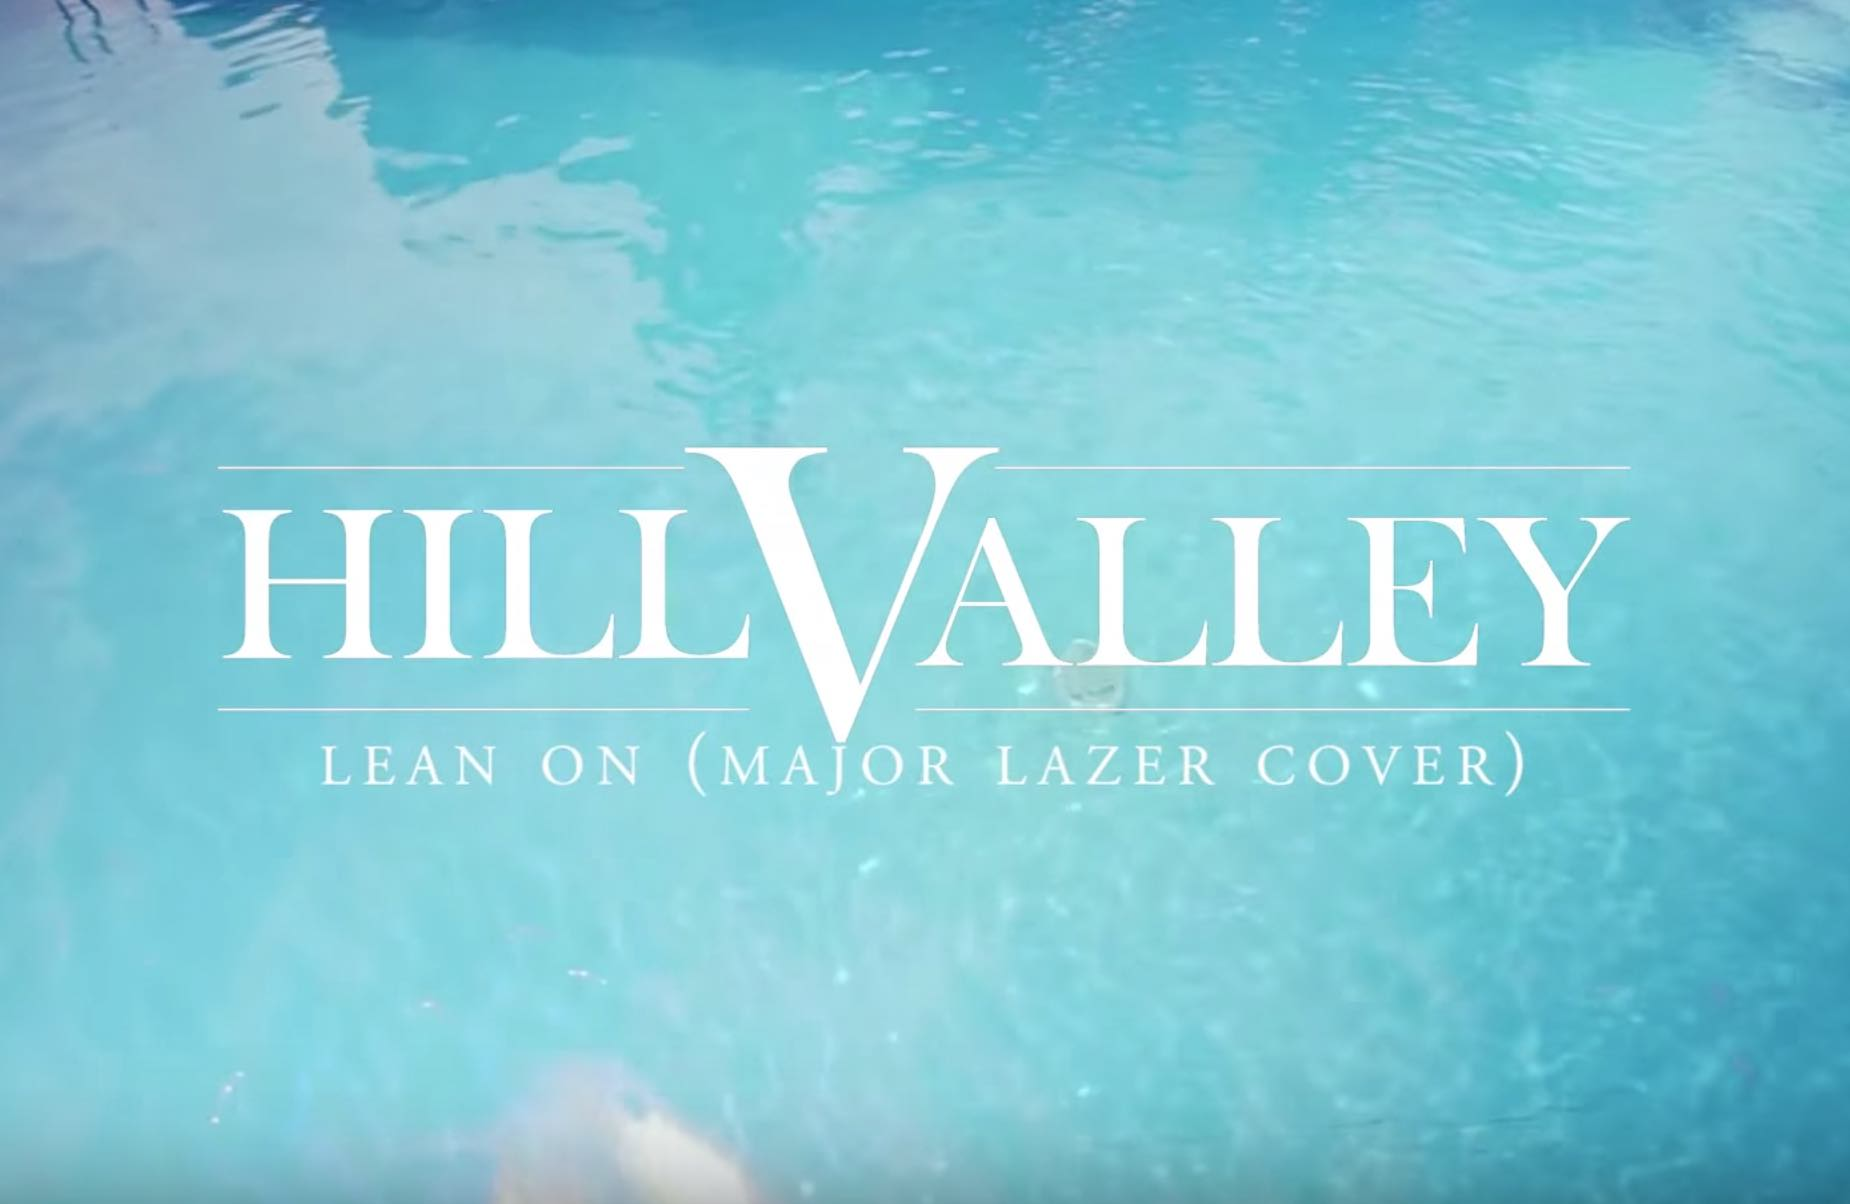 Hill Valley – Lean on